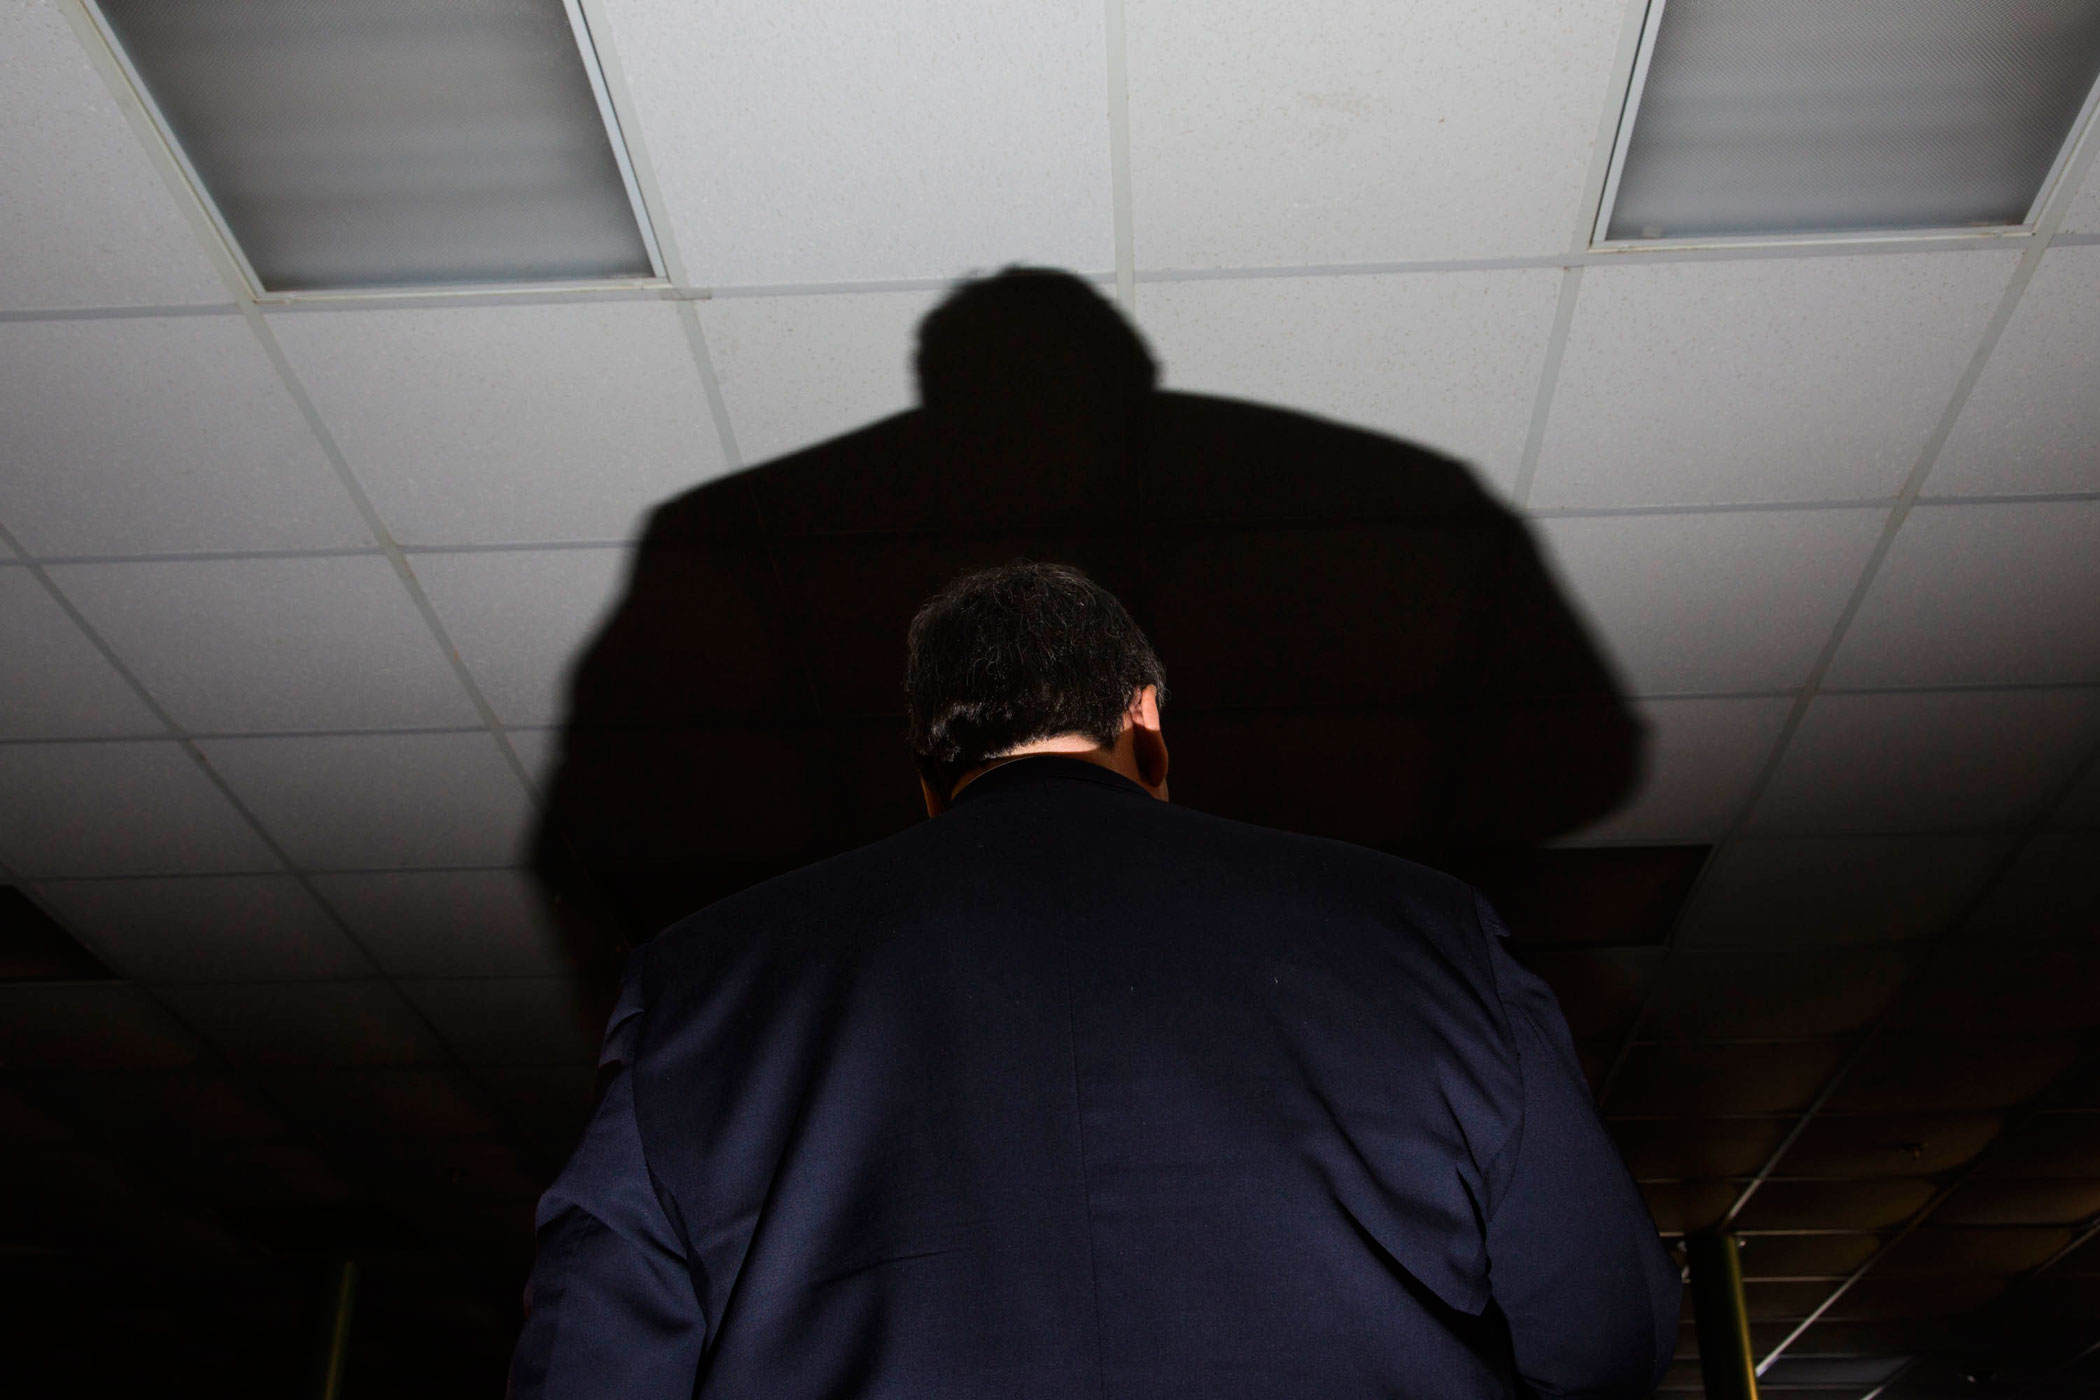 New Jersey Gov. Chris Christie speaks during a campaign event at Hampton Academy on Feb. 7, 2016, in Hampton, N.H.